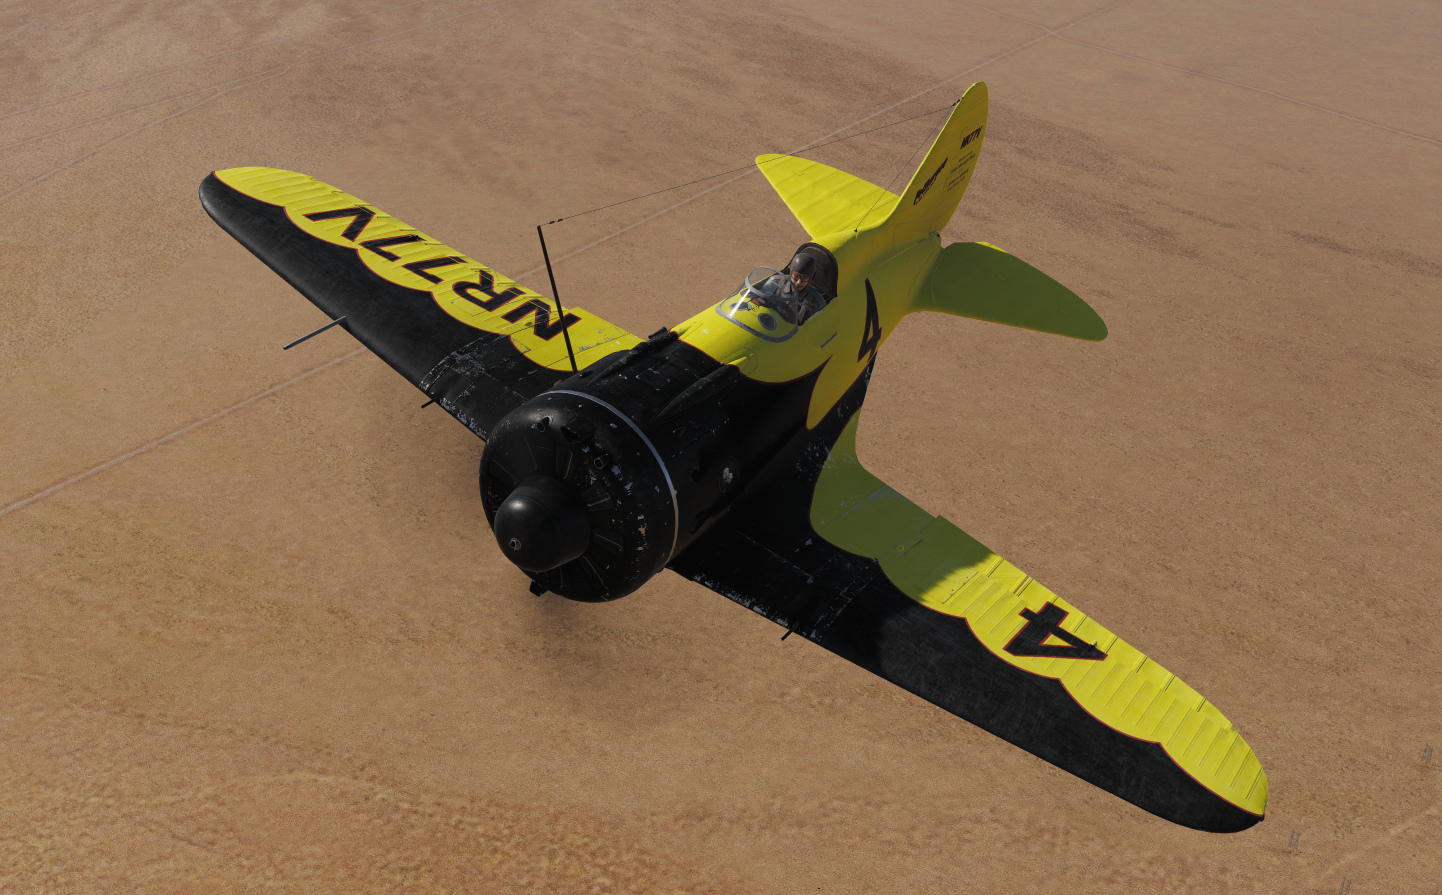 I-16 skin: Gee Bee Model Z racer